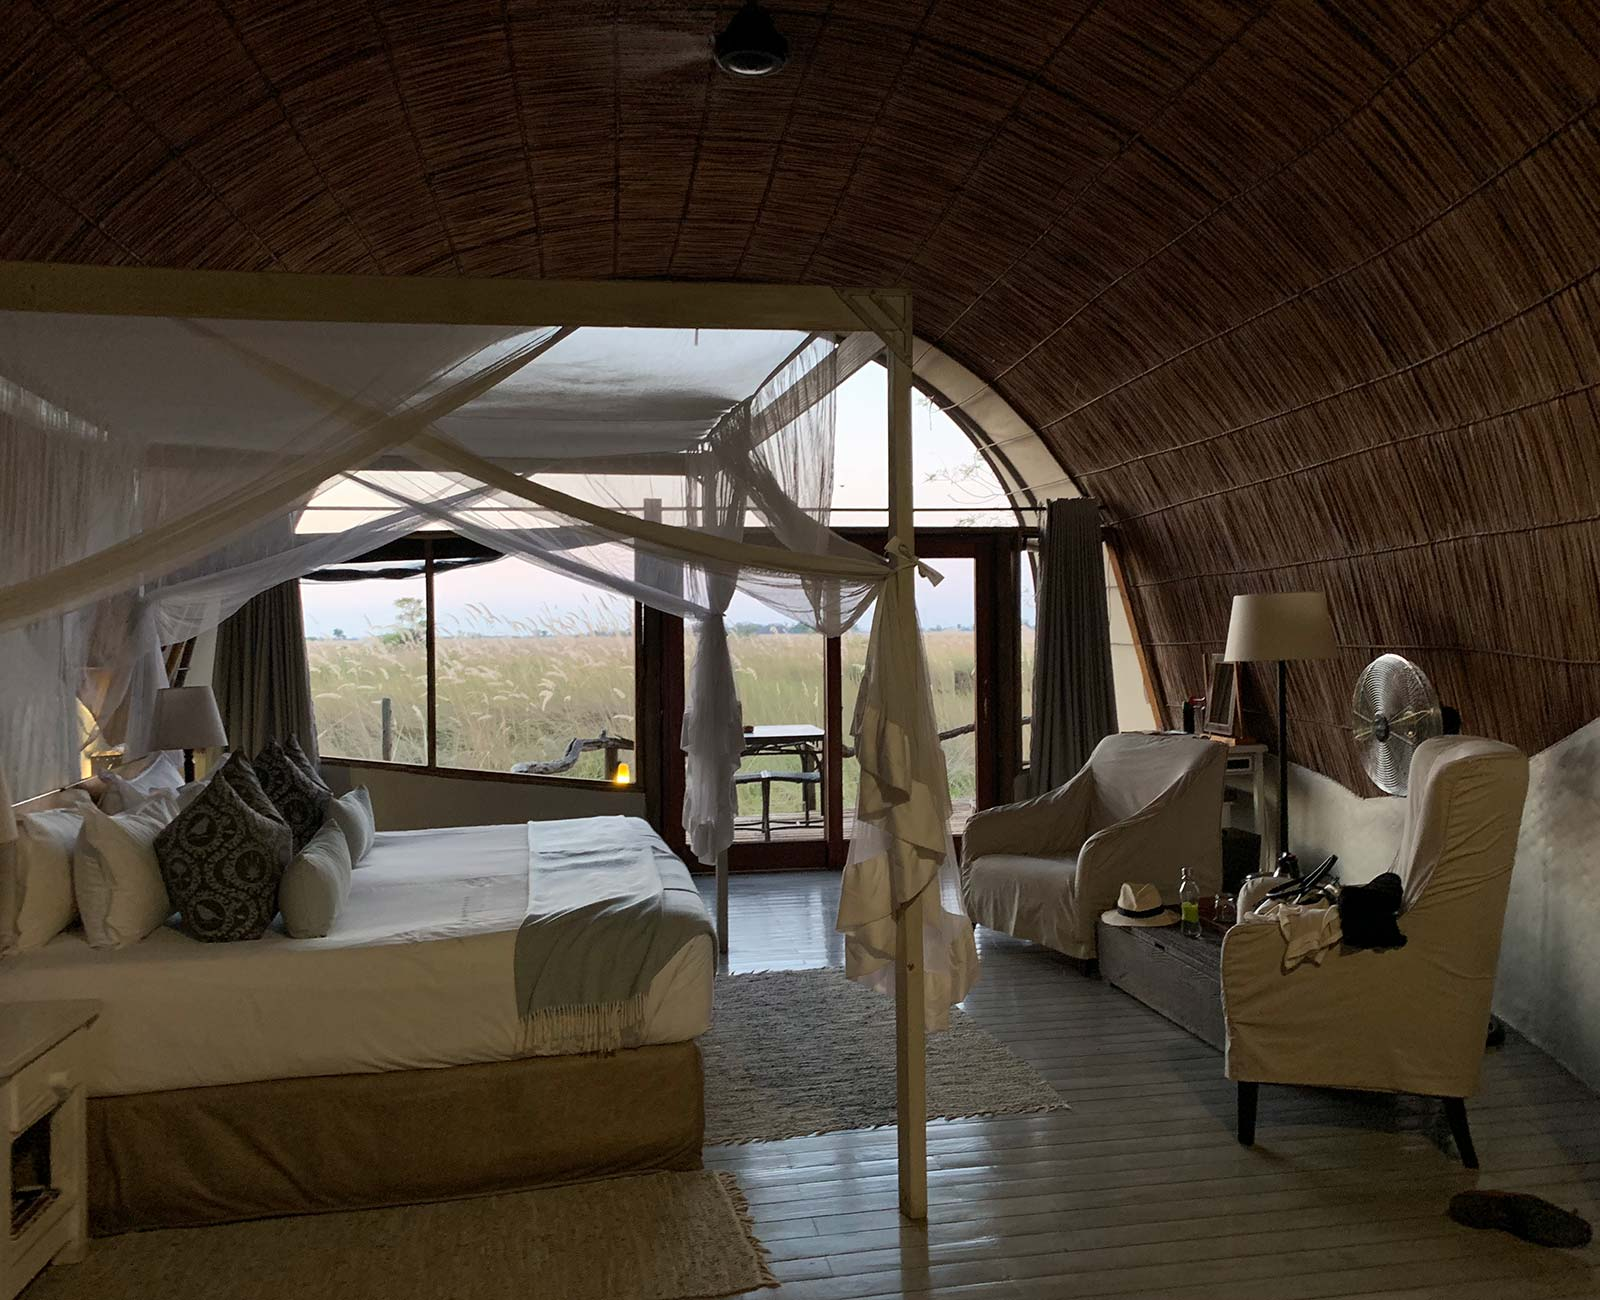 Accommodation at game reserve in Botswana, Africa. Sh*ting next to an elephant